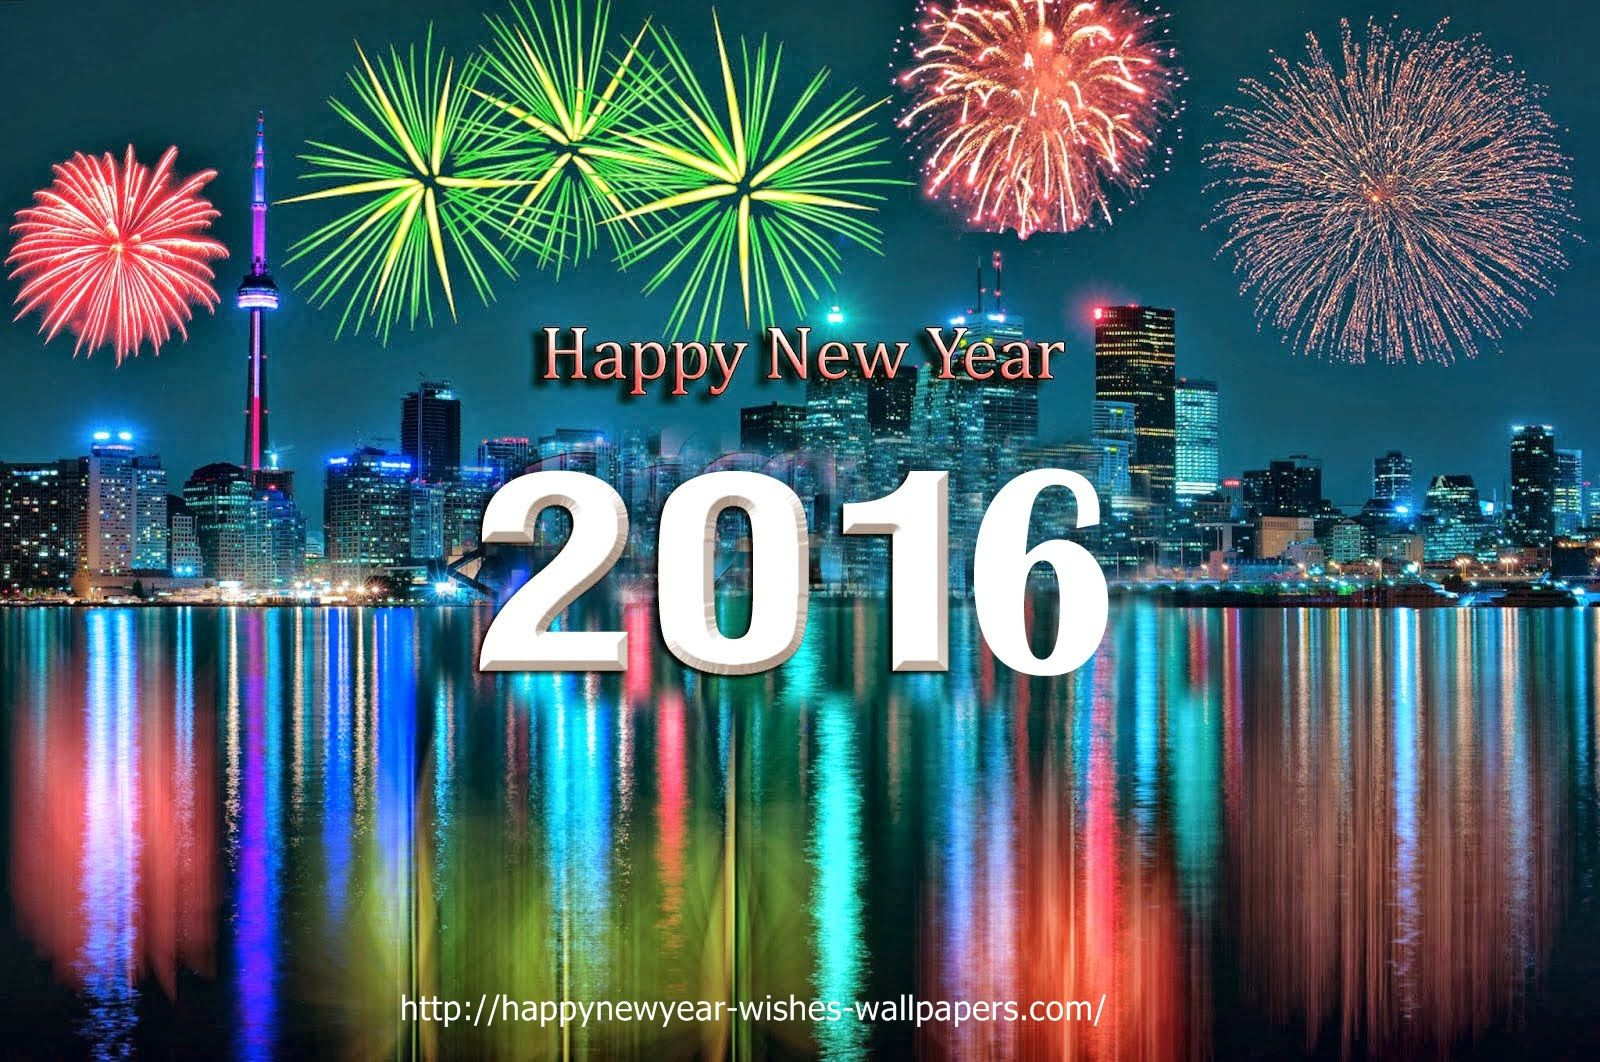 Happy new year 2016 new year greetings and wishes new year 2016 happy new year 2016 new year greetings and wishes new year 2016 facebook status kristyandbryce Image collections